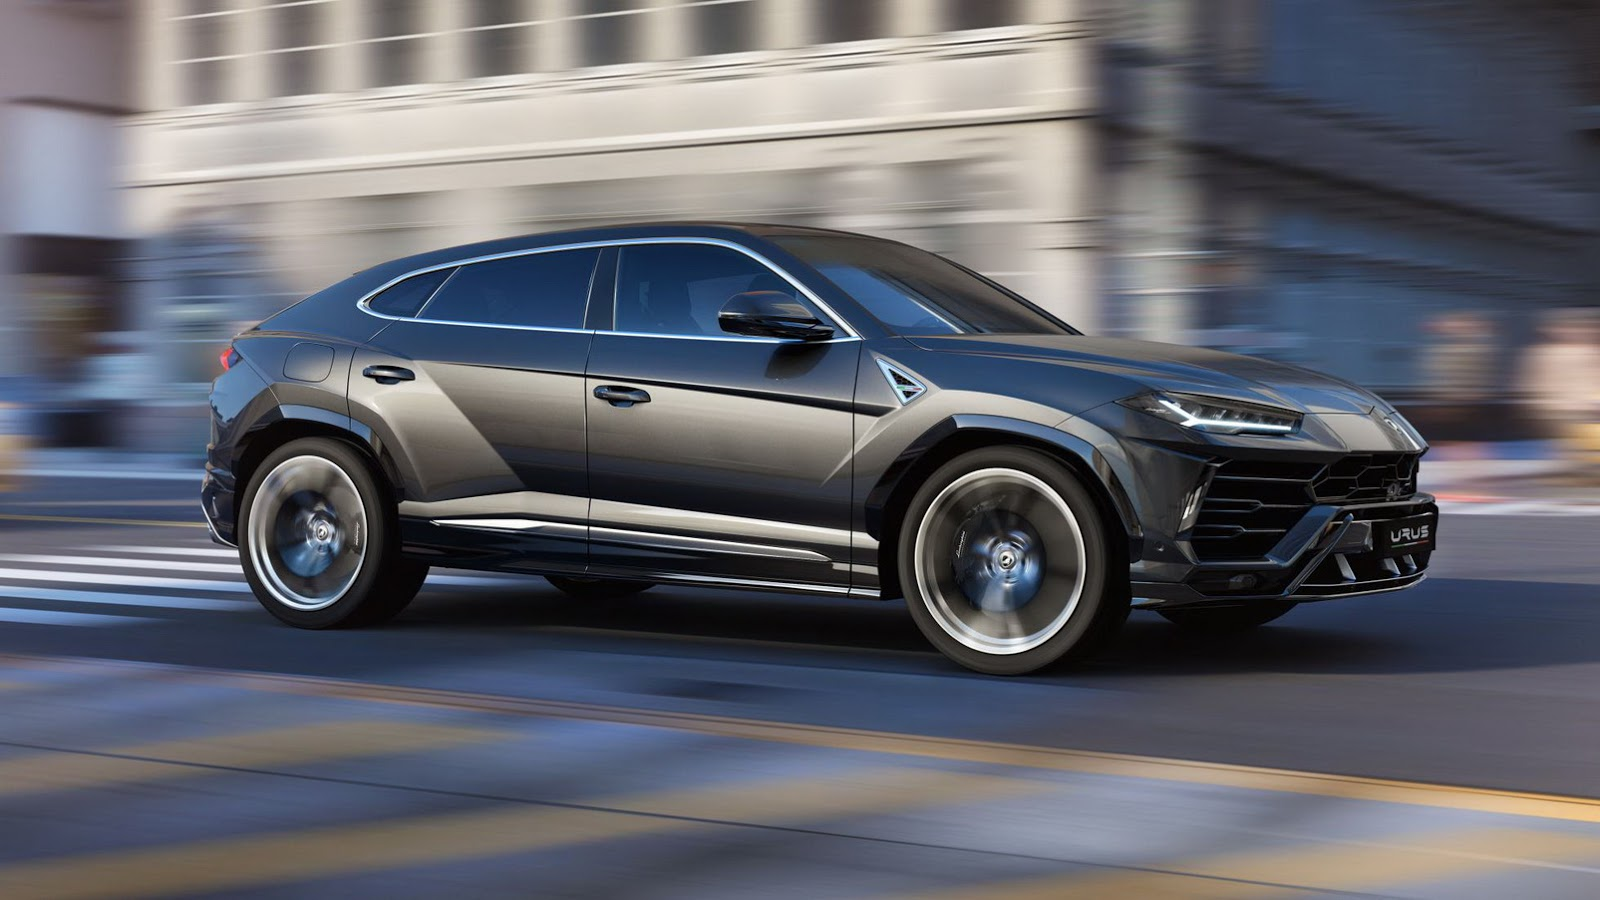 lambo-urus-officialy-unveiled-7.jpg